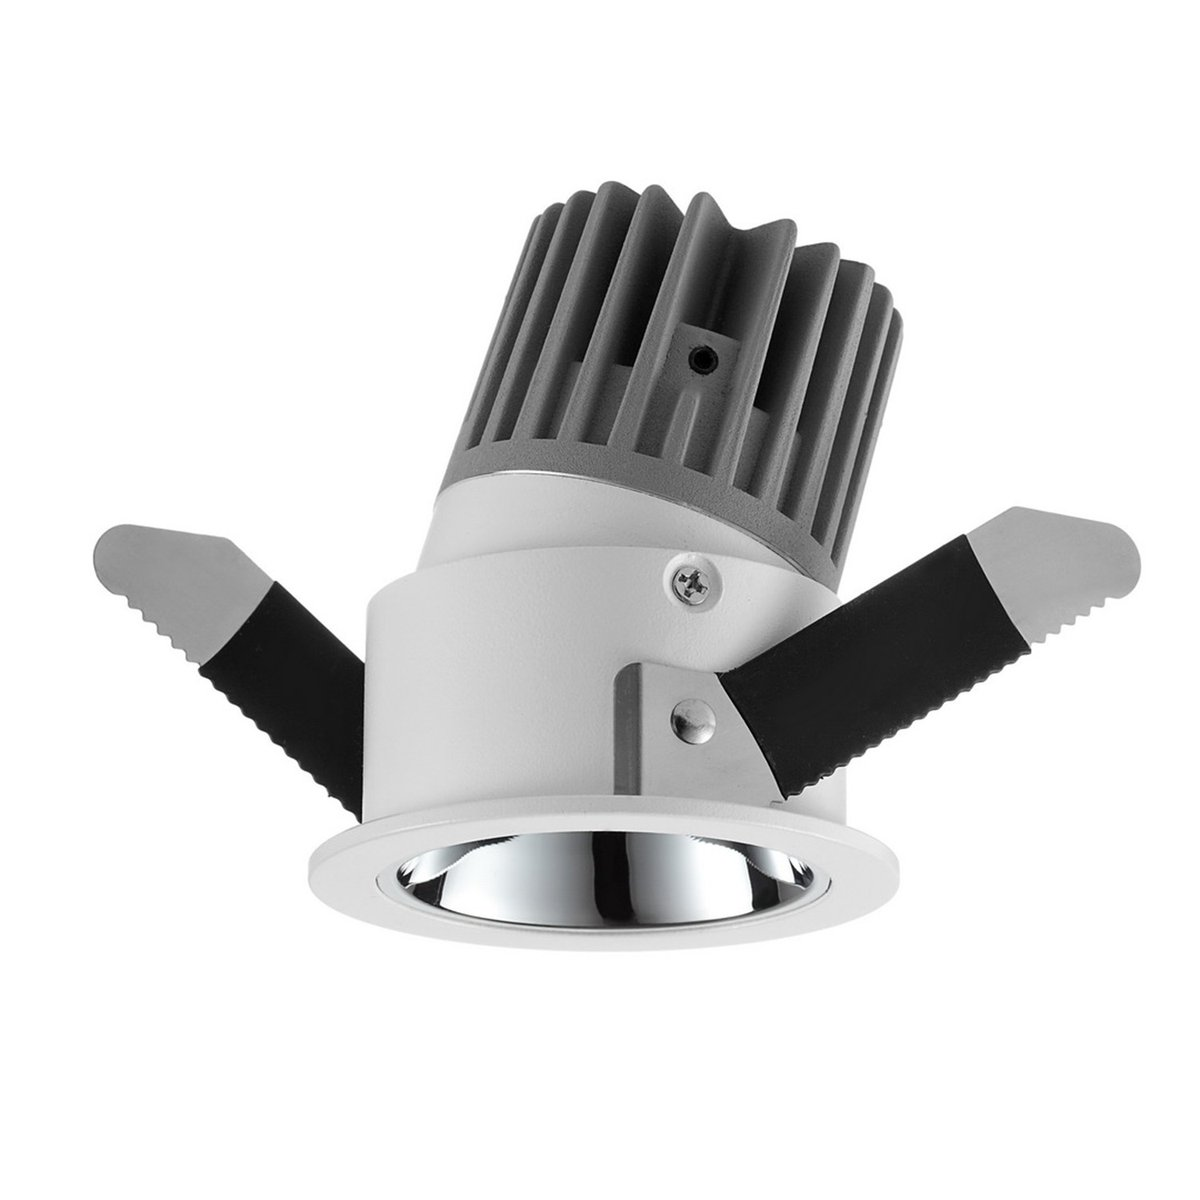 Misson Optoelectronic Technology Co, Ltd. : we believe in innovation. Innovation is at the heart of everything we do. #cornerwalllamp<br>http://pic.twitter.com/KJwrU2KyzF